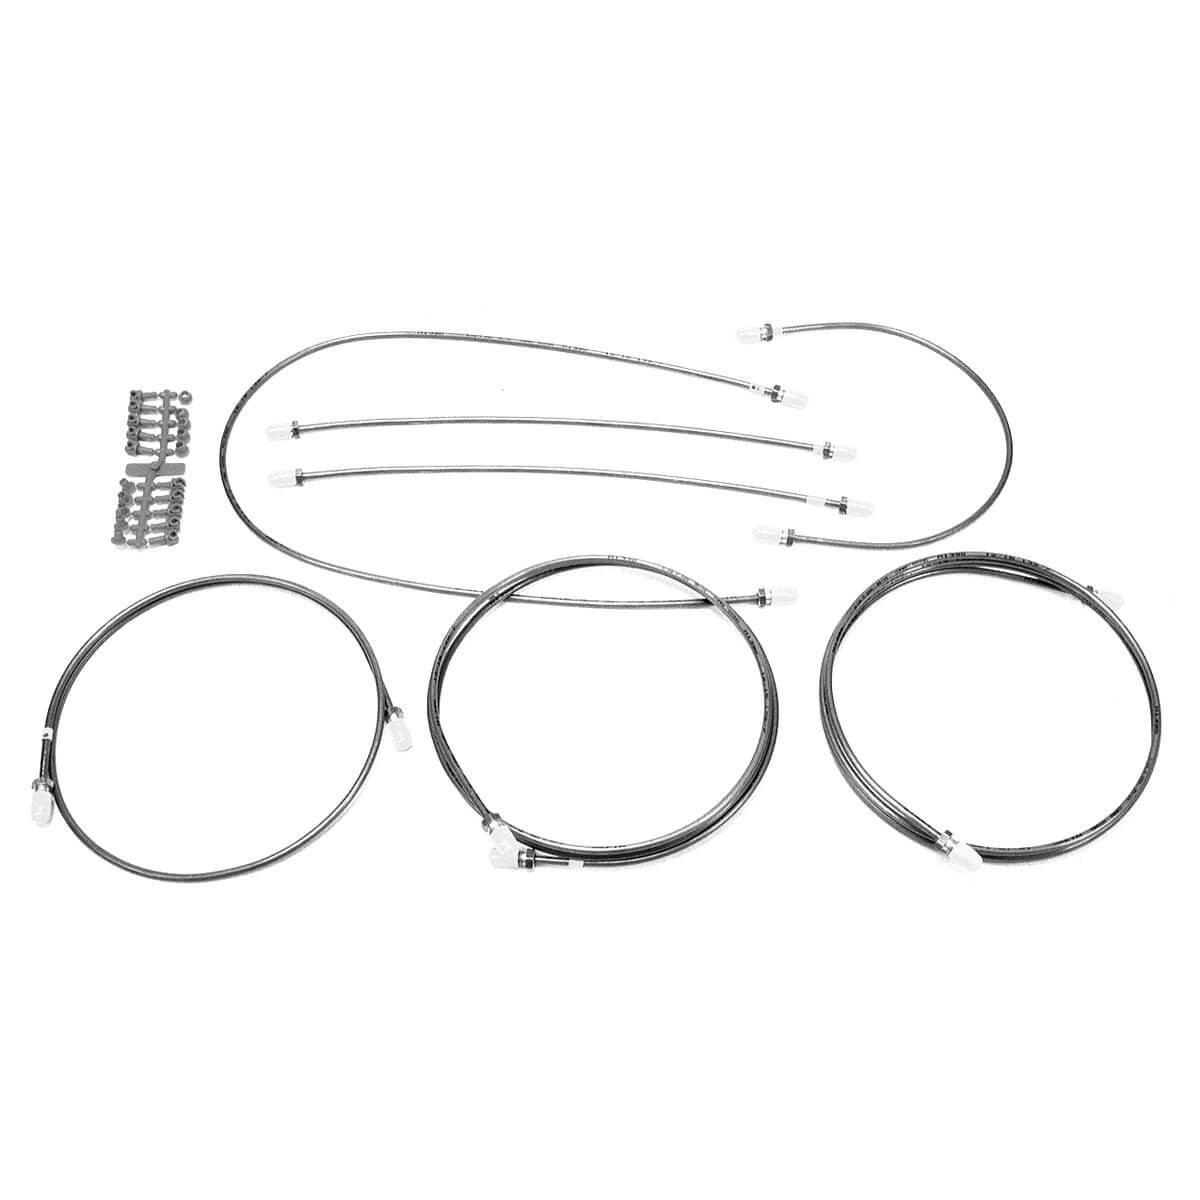 588 208 Brake Pipe Set Dual Line Left Hand Drive